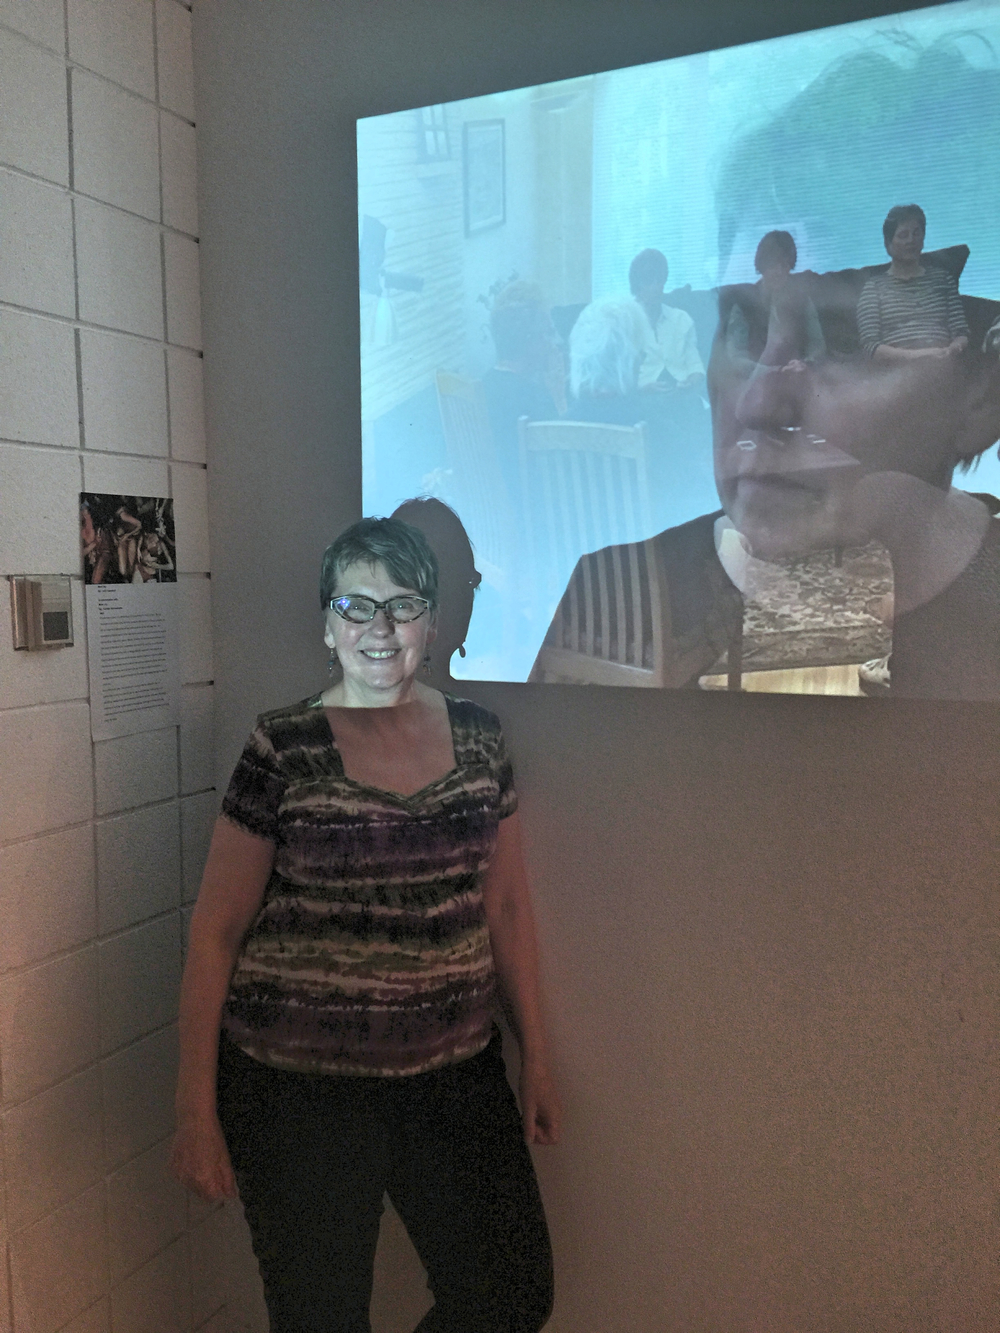 Here is Jude standing in front of her video performance piece; a response to the Schneemann work.